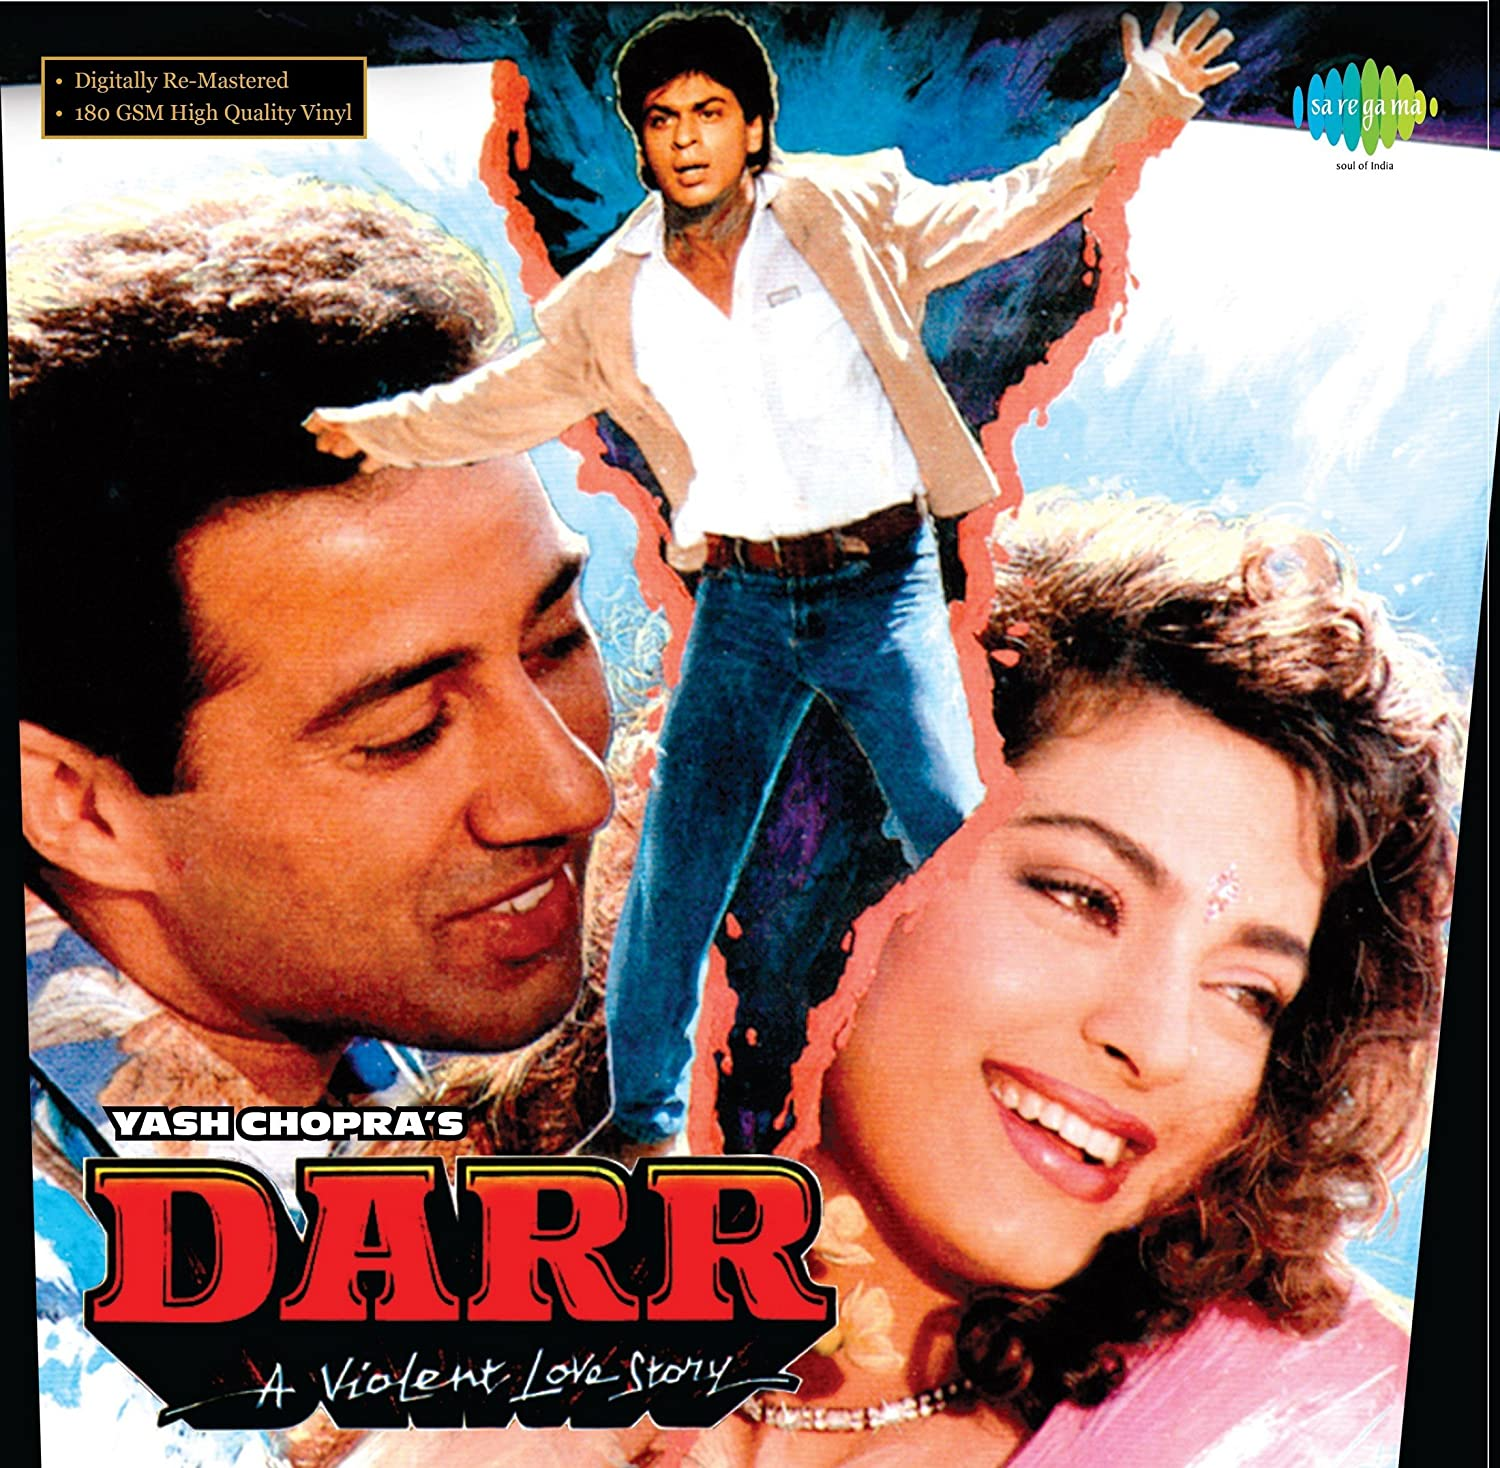 SHAHRUKH KHAN AND JUHI CHAWLA - DARR (LP) - Amazon.com Music